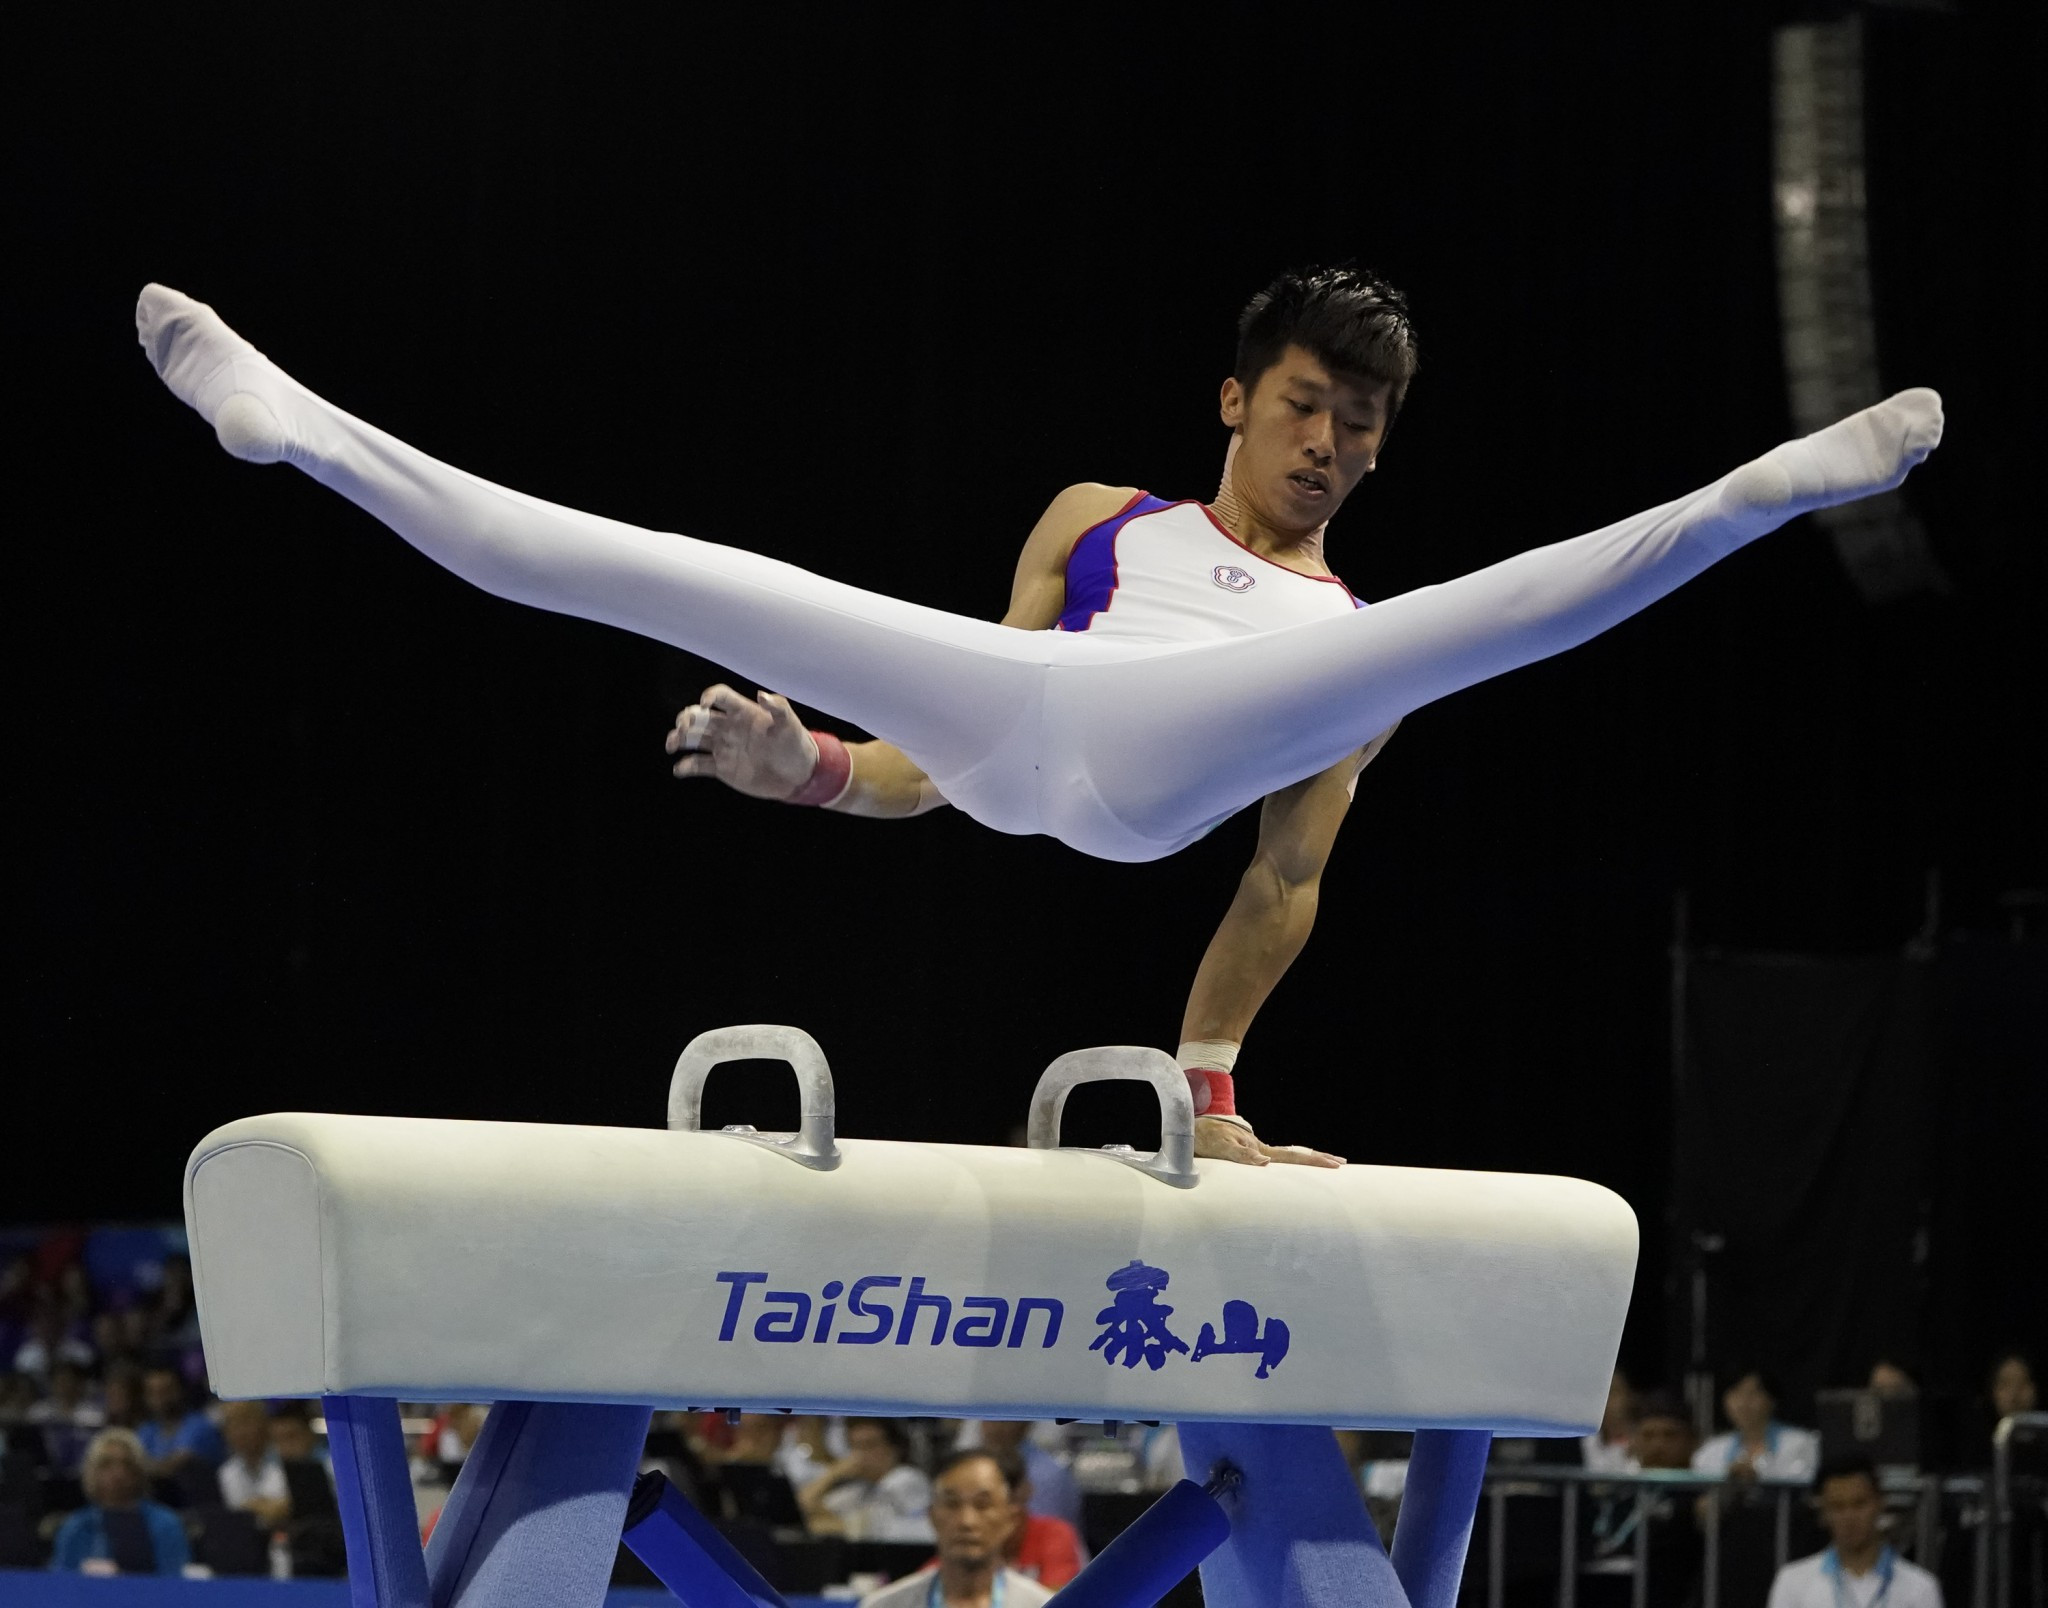 Ten gymnasts claim gold medals as artistic competition concludes at Taipei 2017